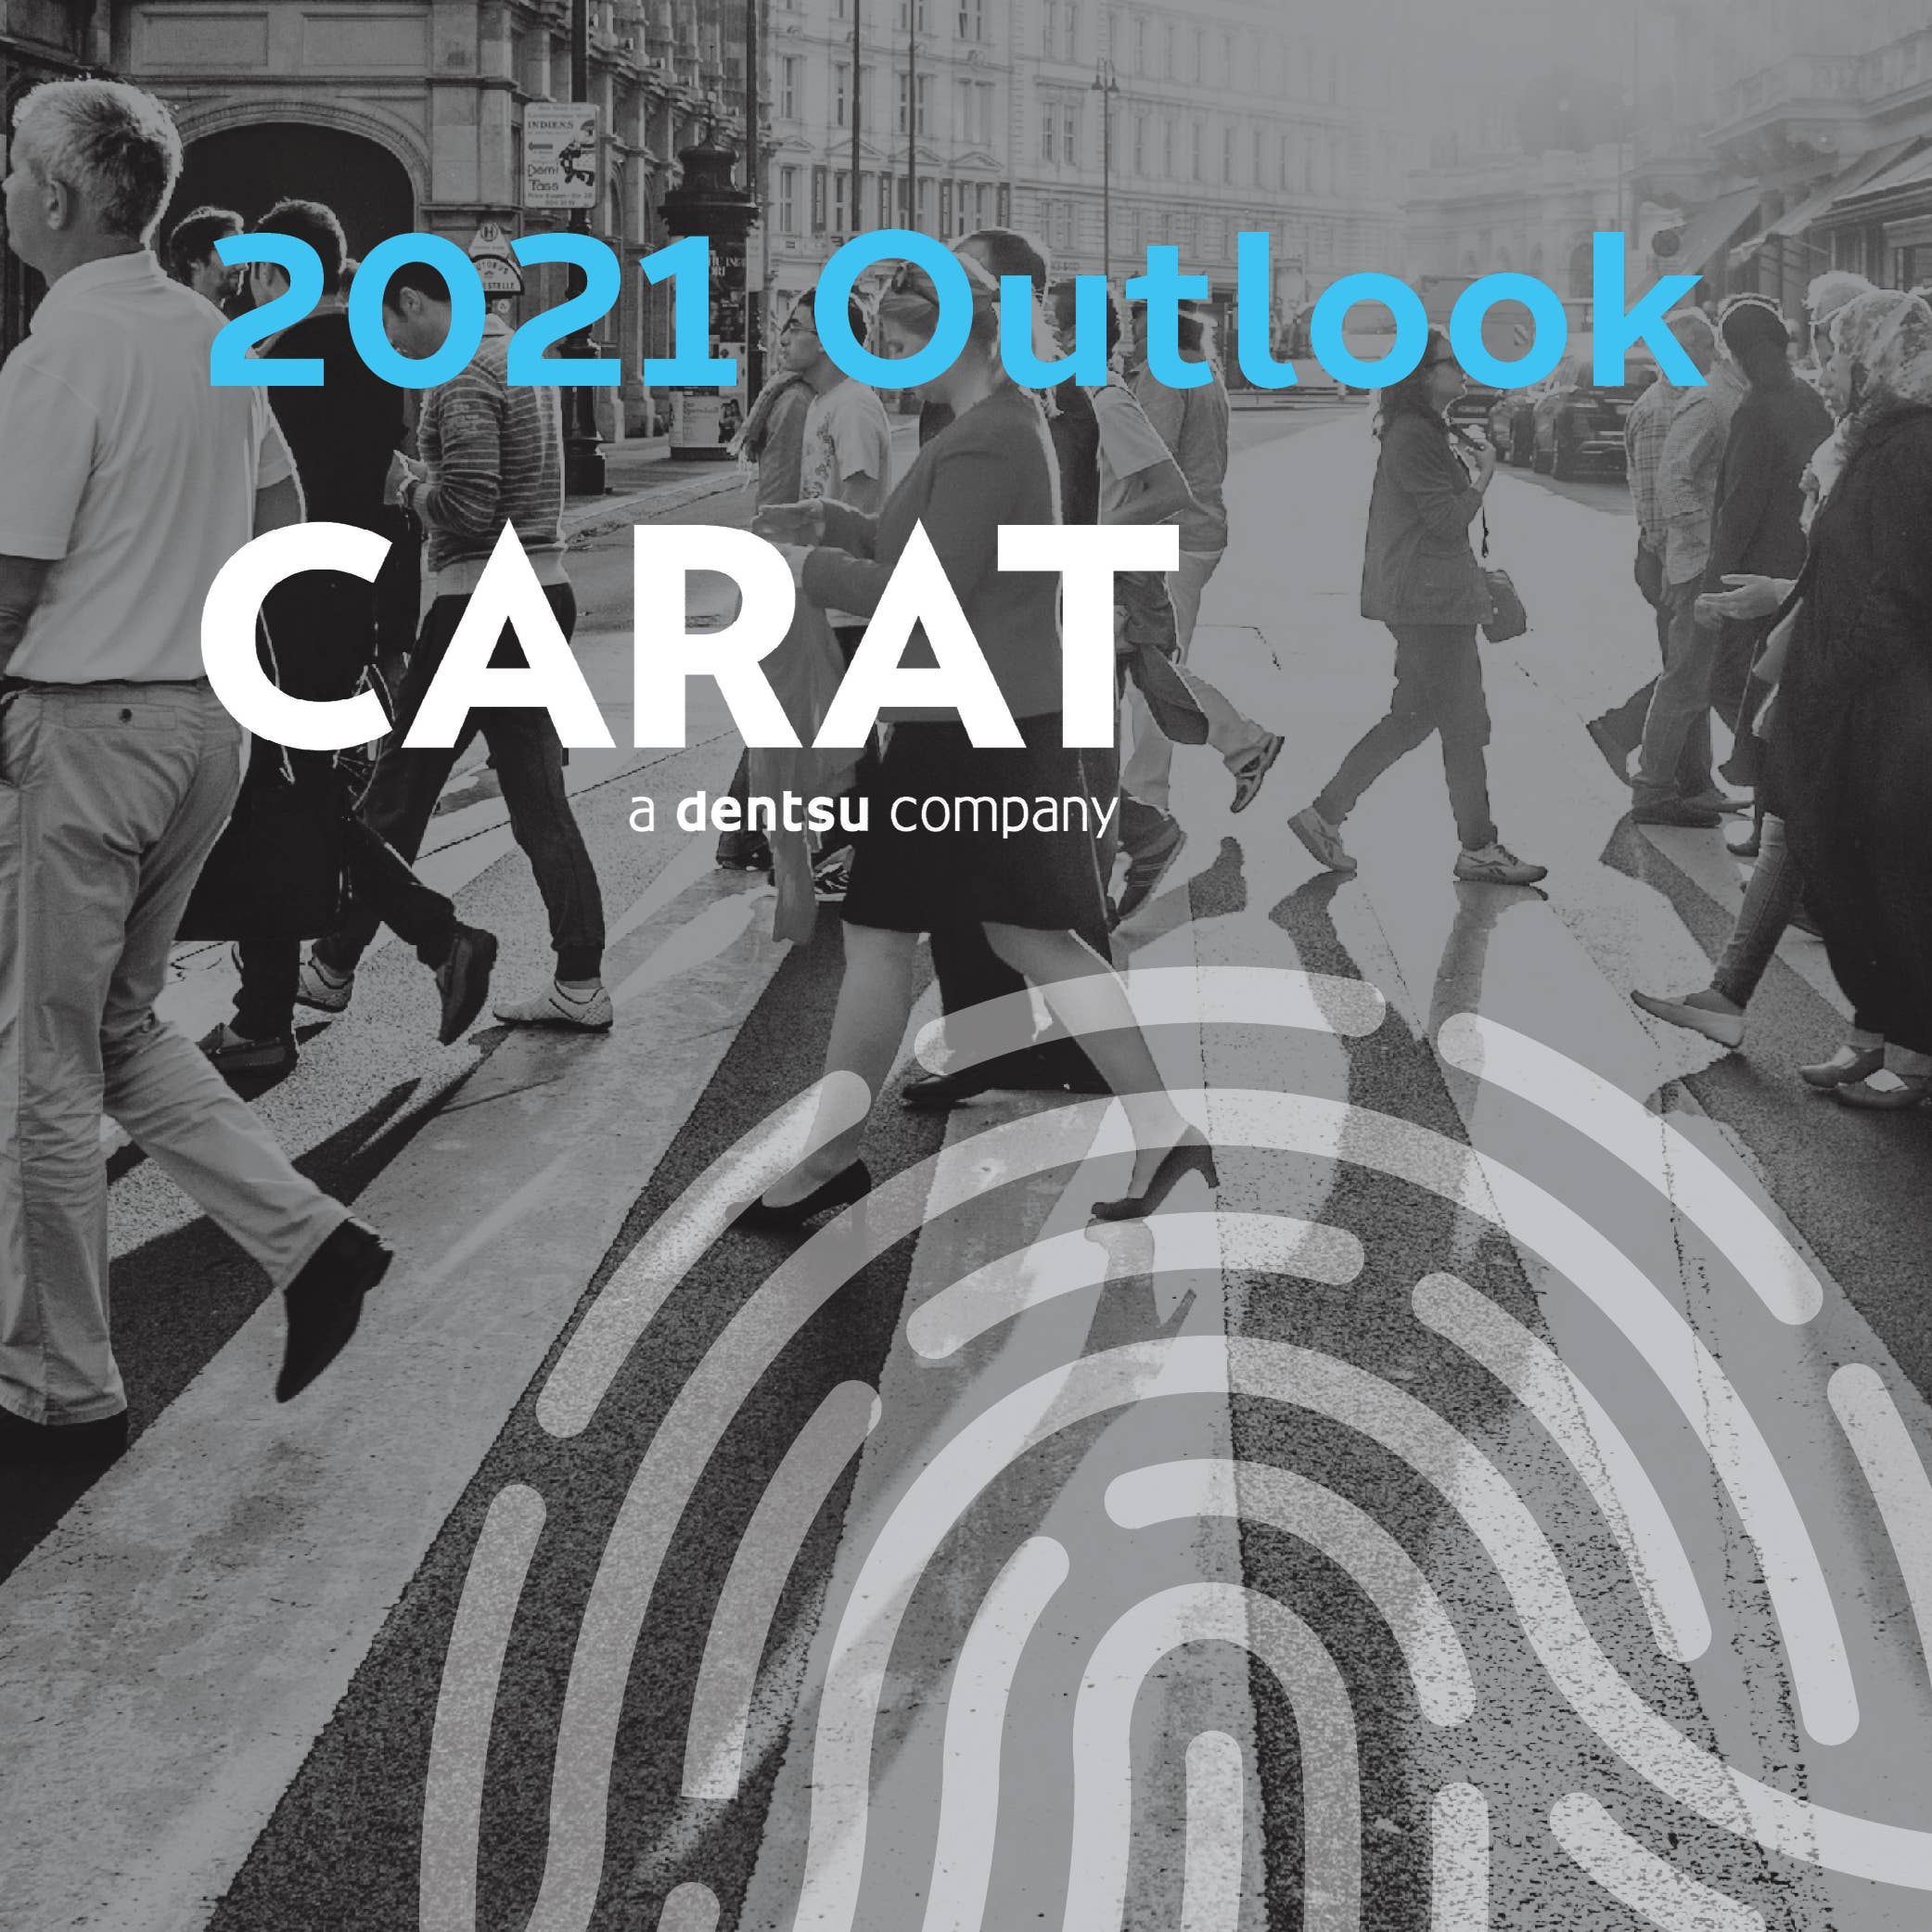 Carat Ireland 2021 Outlook